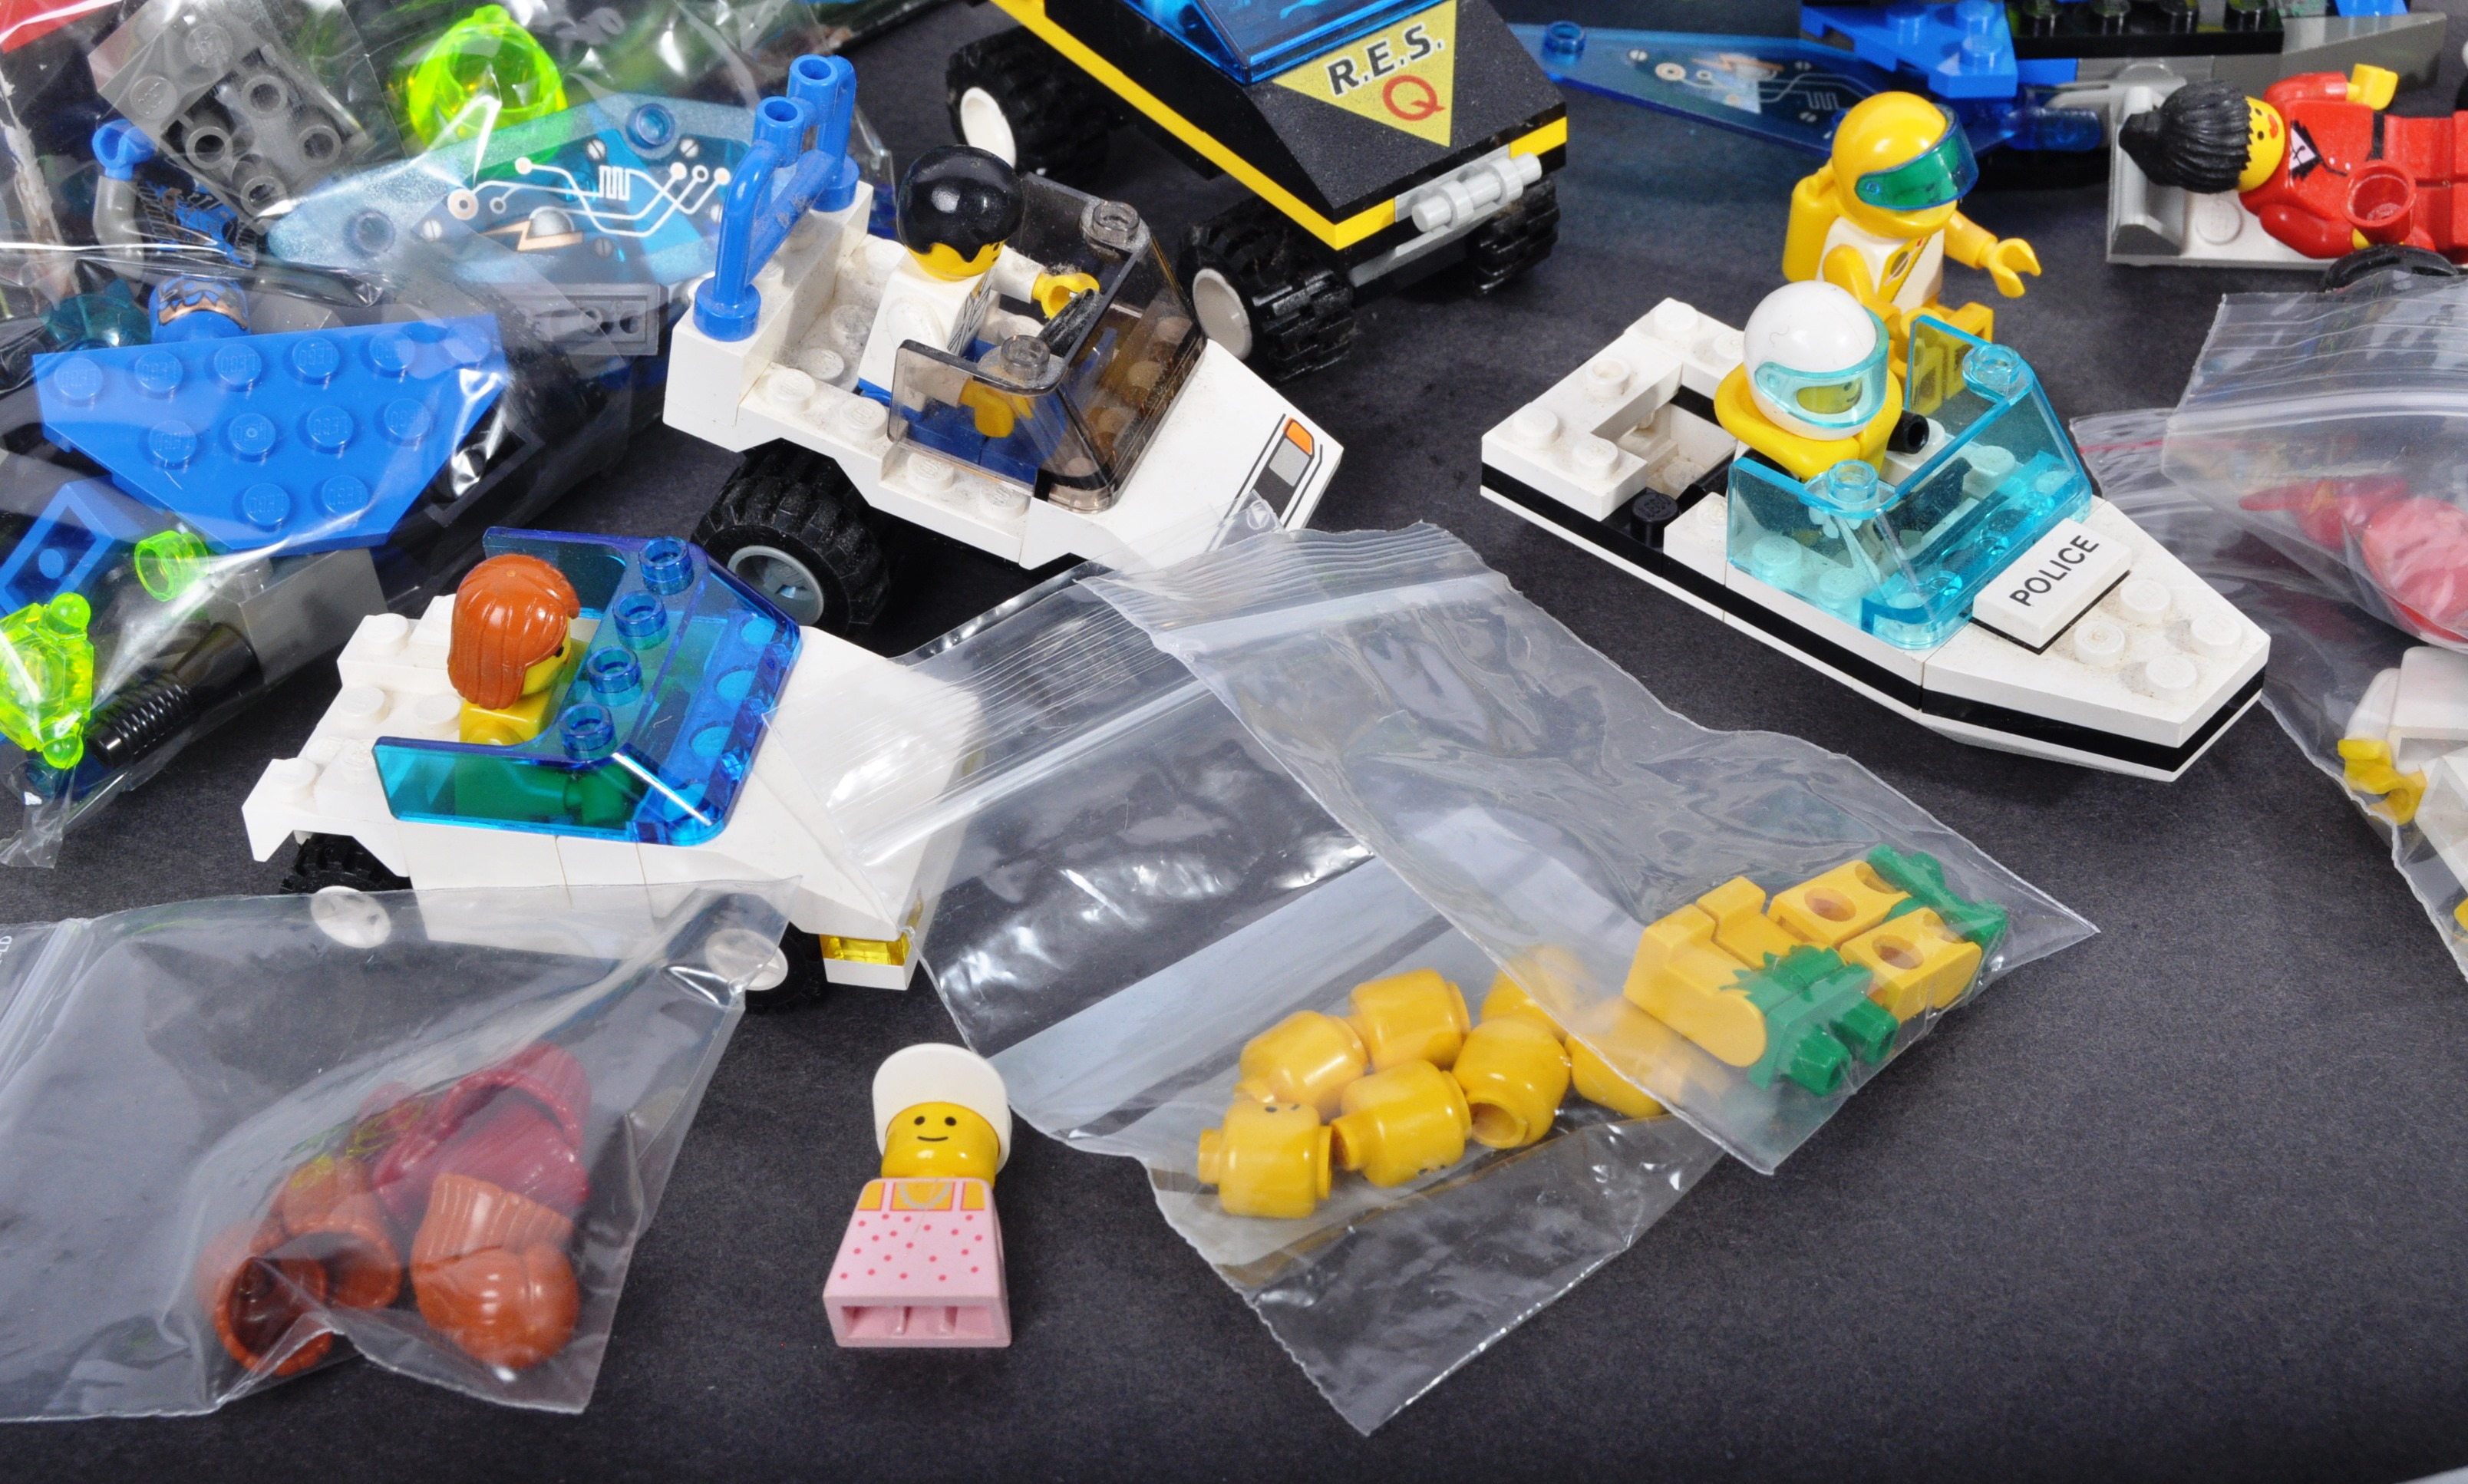 COLLECTION OF ASSORTED VINTAGE MINI LEGO SETS & MINIFIGURES - Image 10 of 10